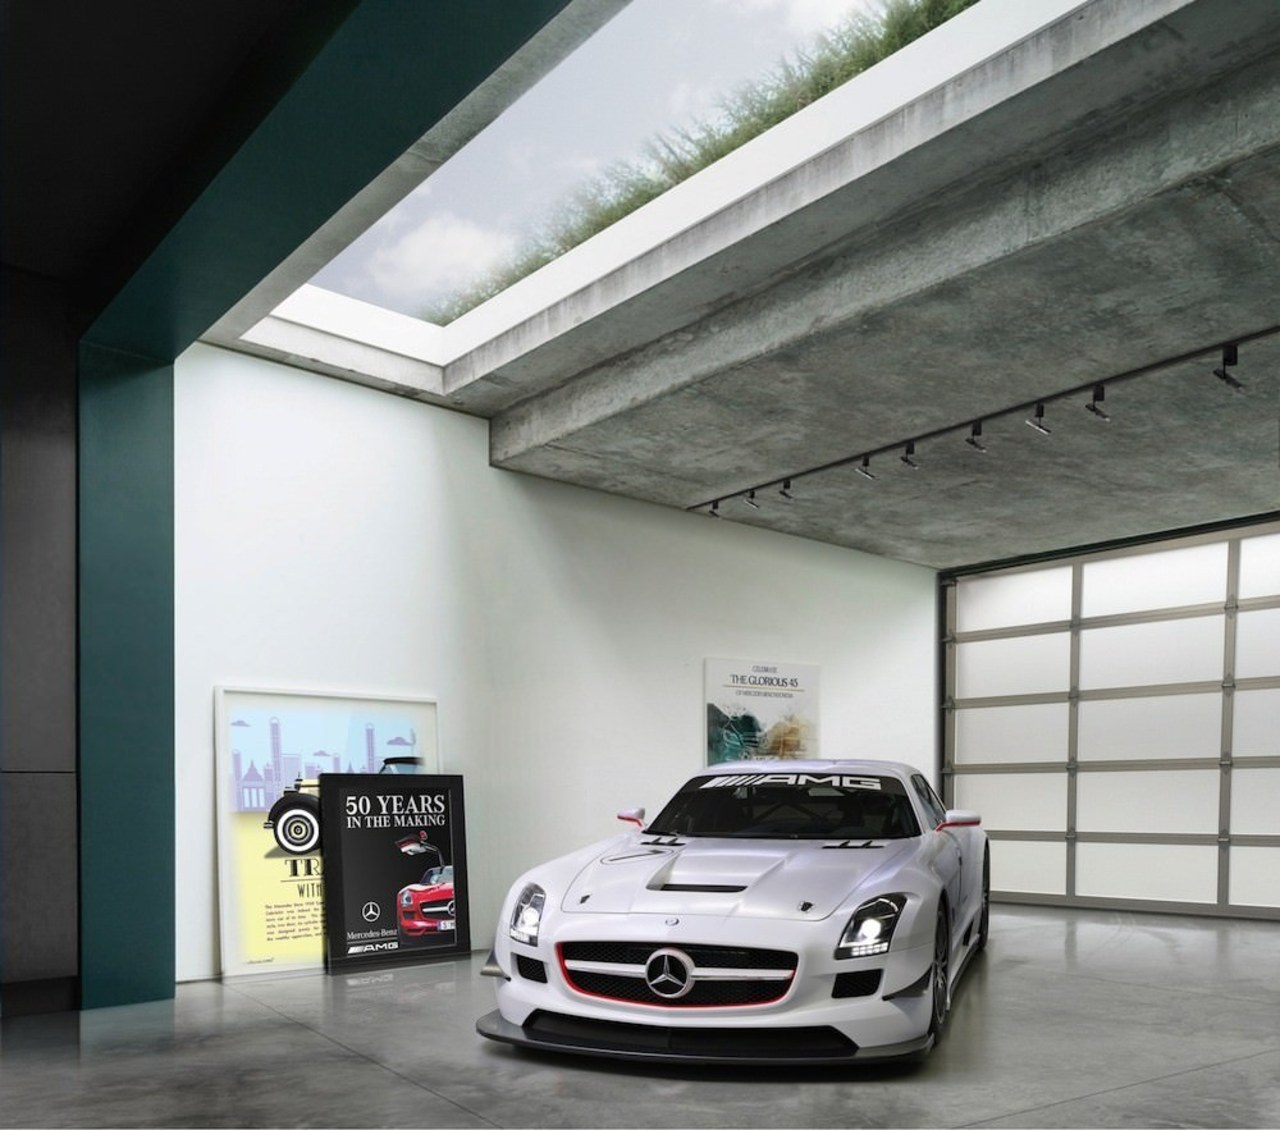 Glimpse the green roof through the skylight automotive design, automotive exterior, building, car, garage, luxury vehicle, mercedes benz, mercedes benz sls amg, motor vehicle, performance car, personal luxury car, sports car, vehicle, gray, black